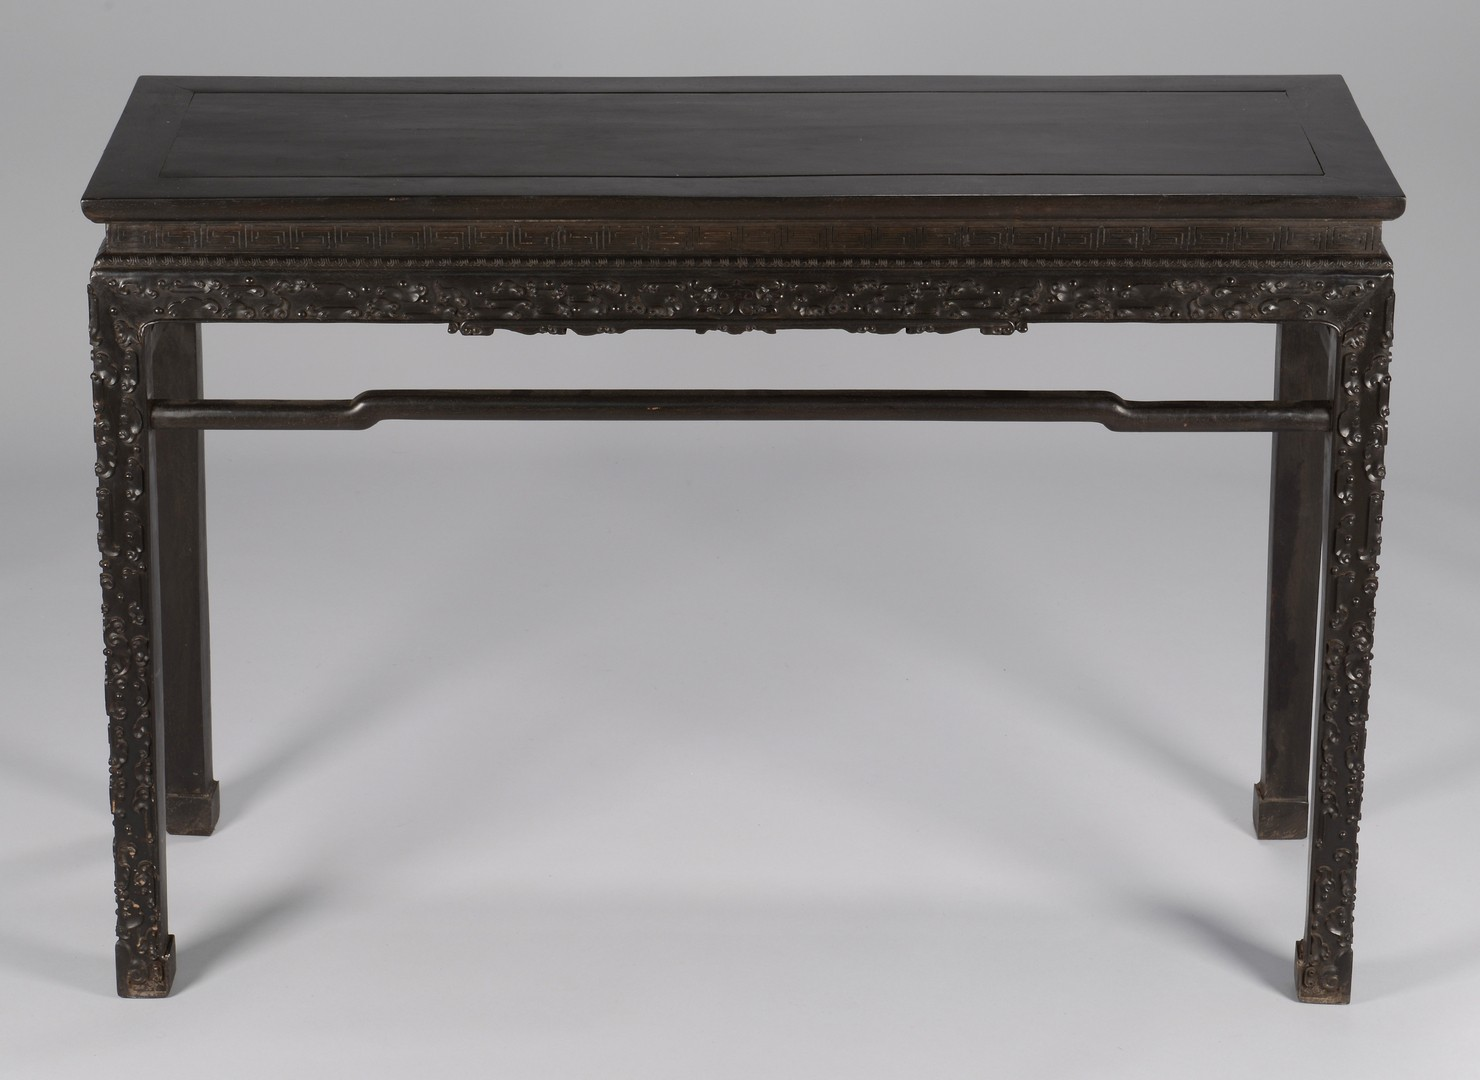 Lot 3594171: Chinese Hardwood Altar Table